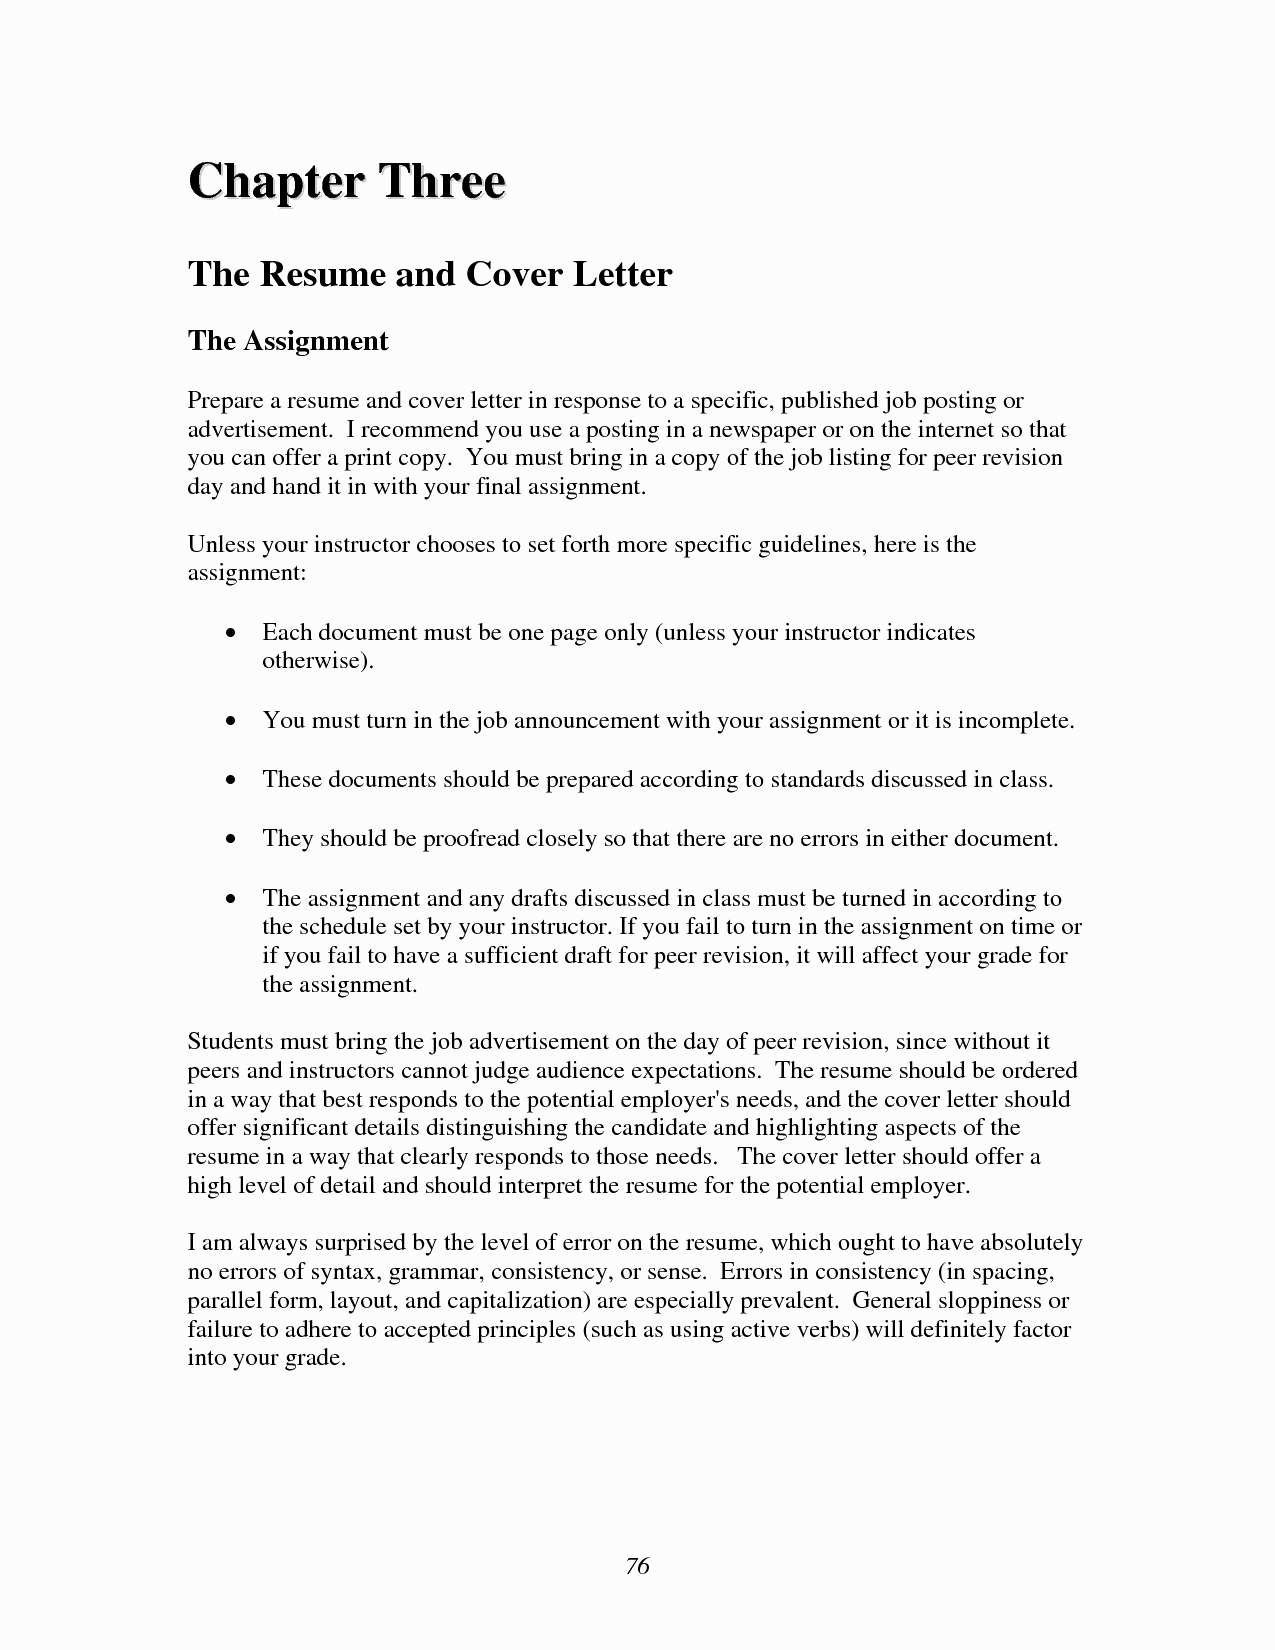 Interview Cover Letter Template - Resume and Cover Letter Template Beautiful Fresh Job Fer Letter